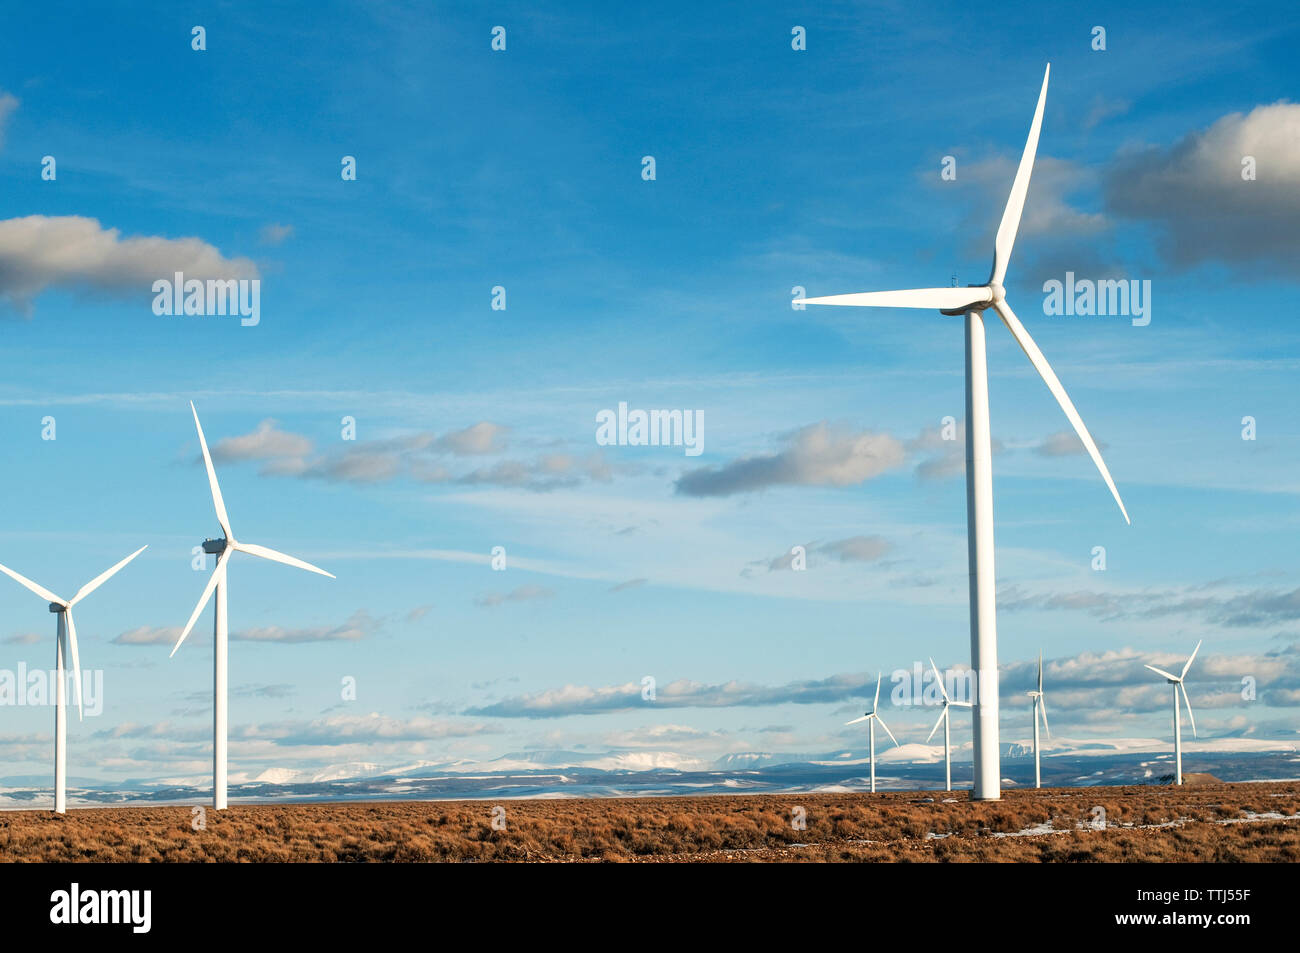 Wind turbines on field against sky on sunny day Stock Photo